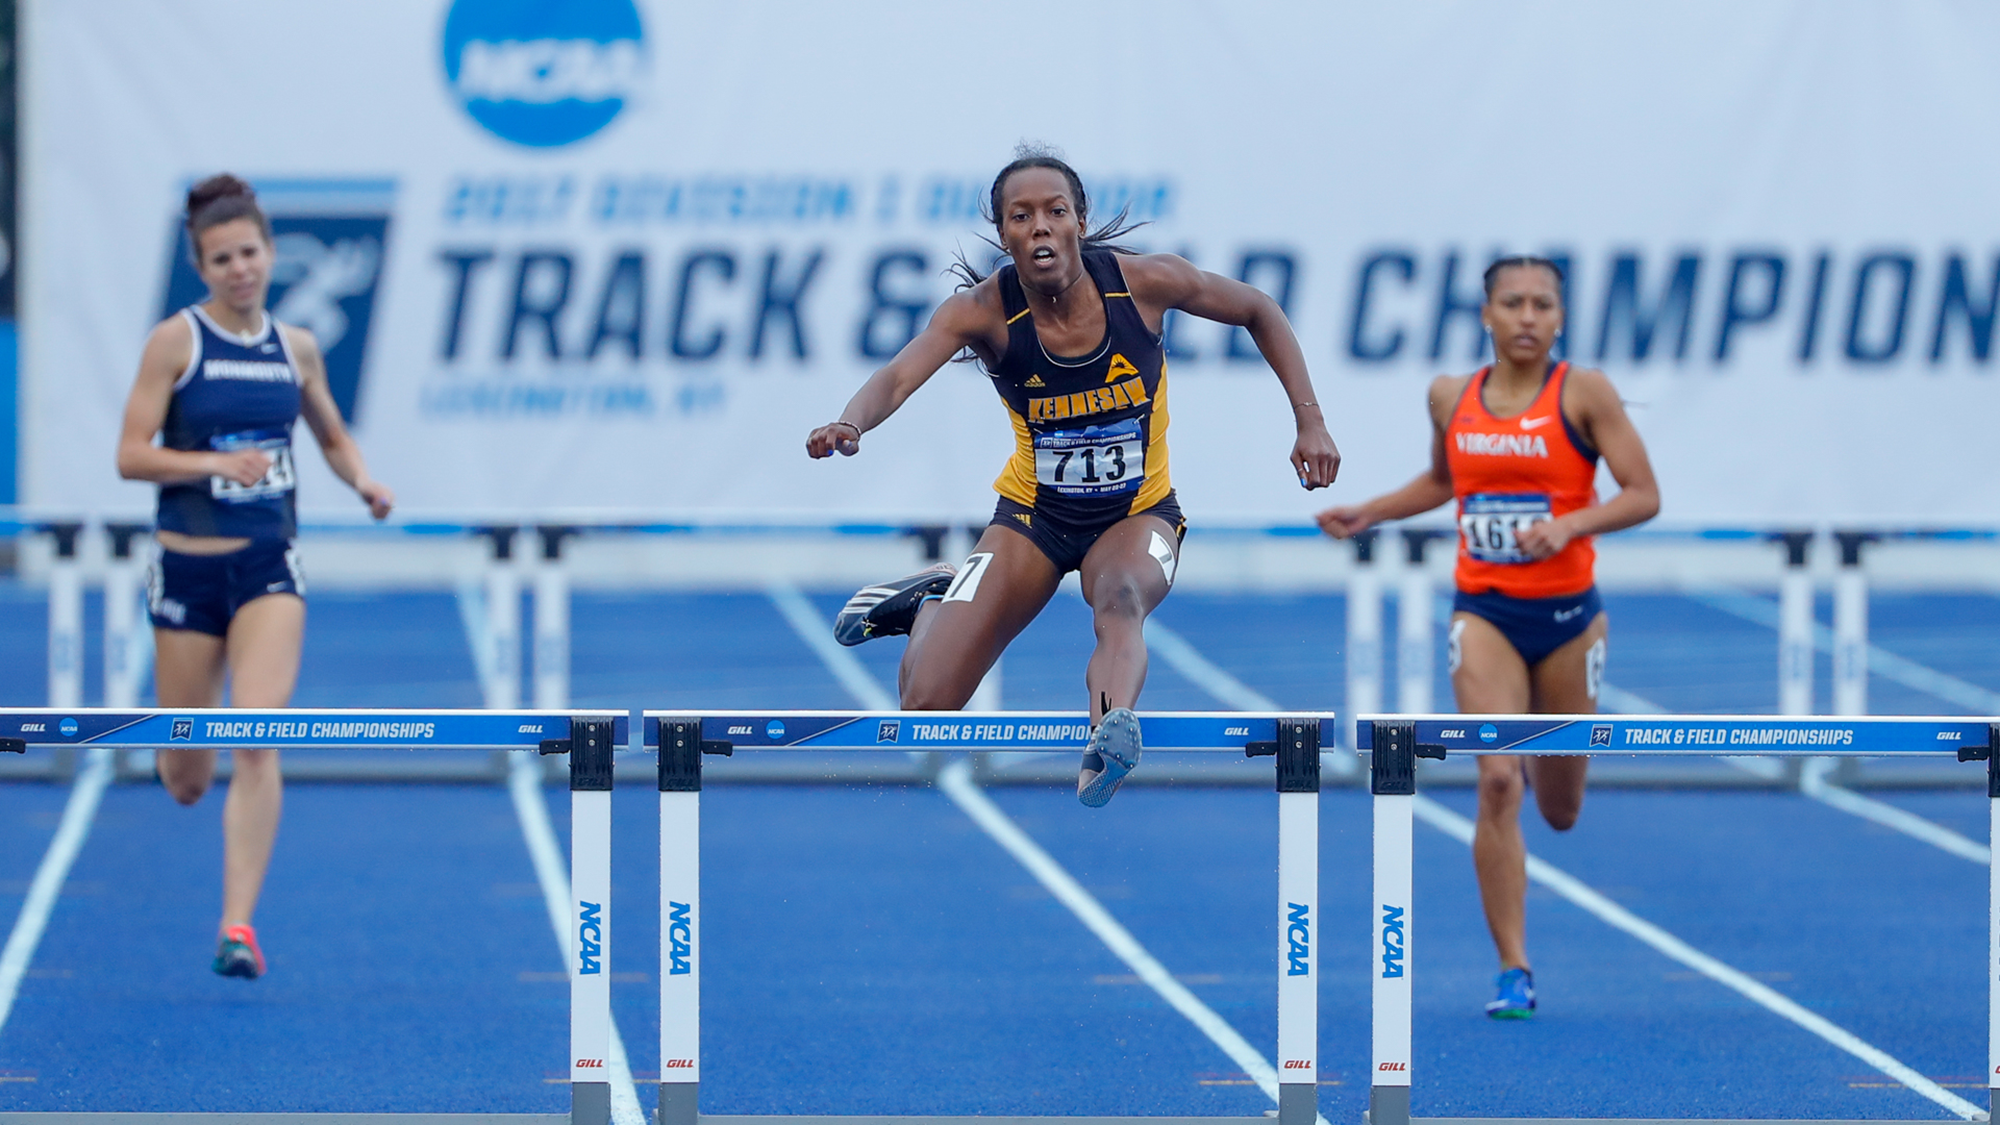 WTRK: Powell Concludes Season in 400m Hurdle Semifinals at NCAA Track and  Field Championships - Track And Field PNG Hurdles